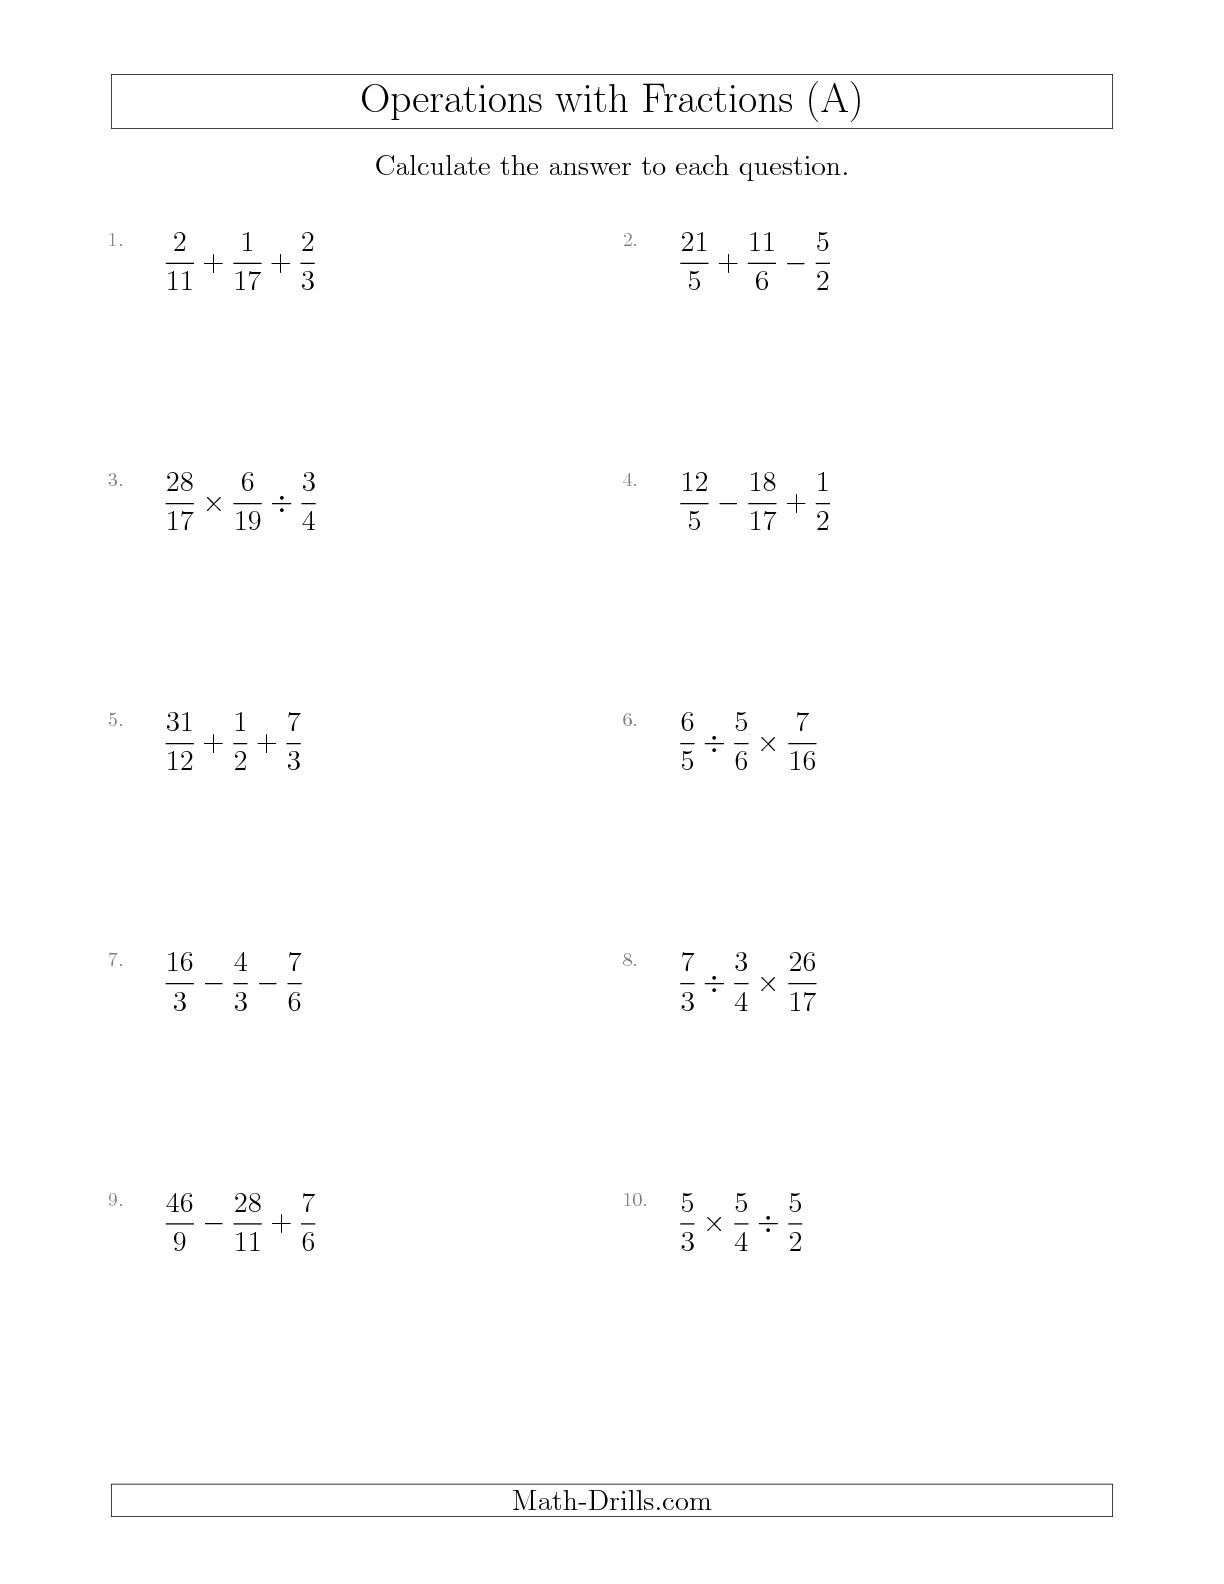 worksheet Fractions To Mixed Numbers Worksheet new mixed operations with three fractions including improper a math worksheet